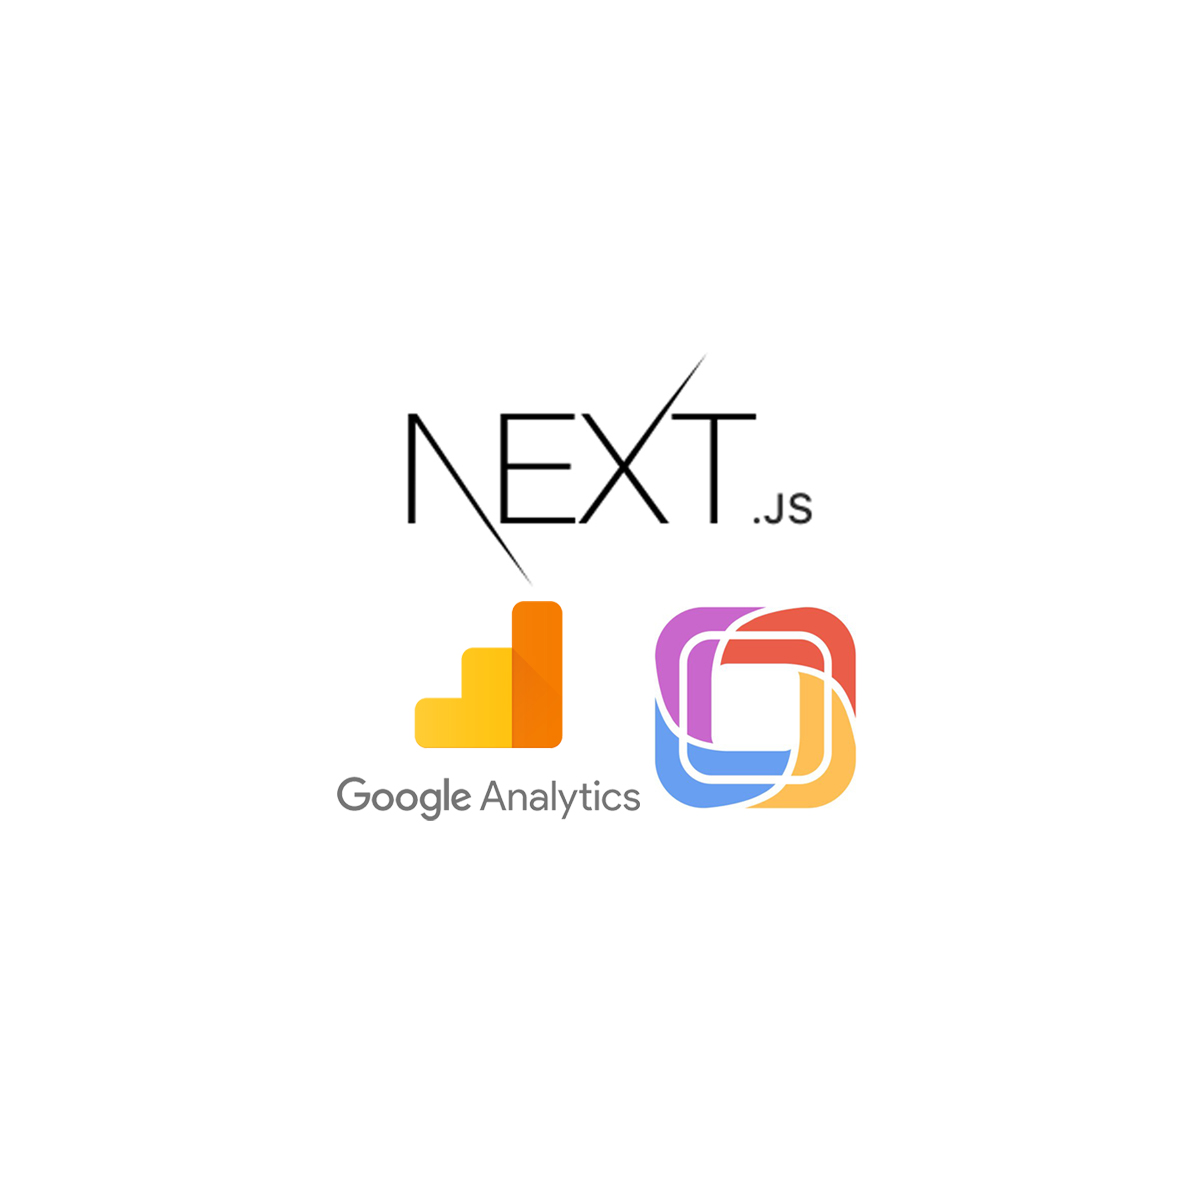 Google Analytics with Next js | Gary Meehan